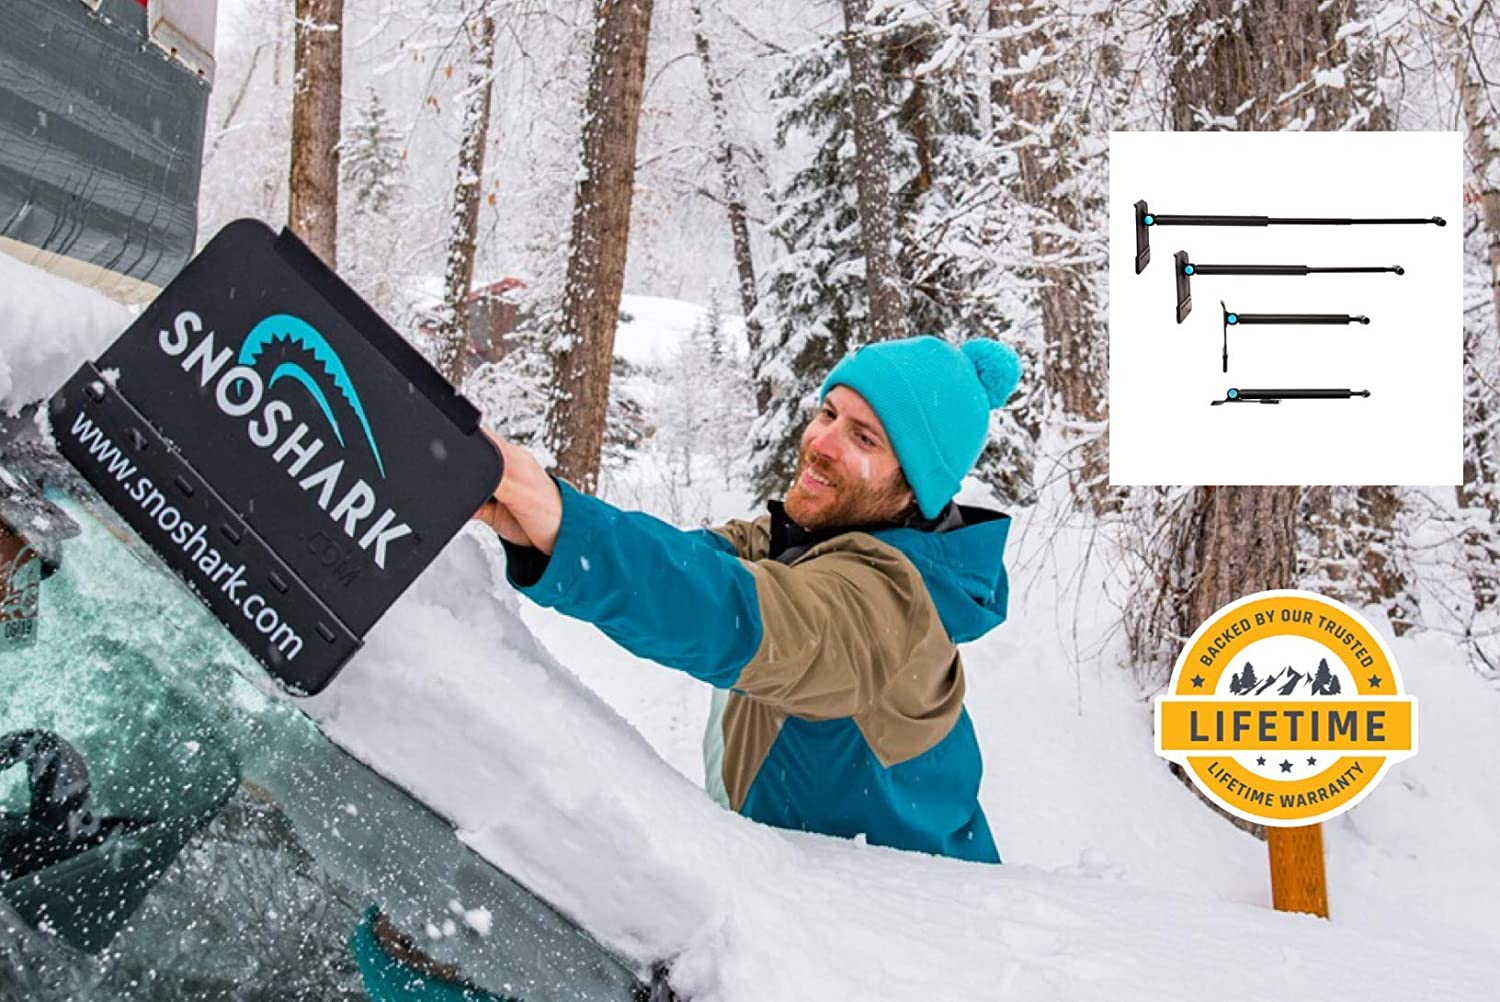 """SnoShark Snow & Ice Removal Tool - Extends to 39"""" - Collapsible for Convenient Storage - Heavy Duty & Durable - Includes Storage Bag - Foam Pad Prevents Scratching"""